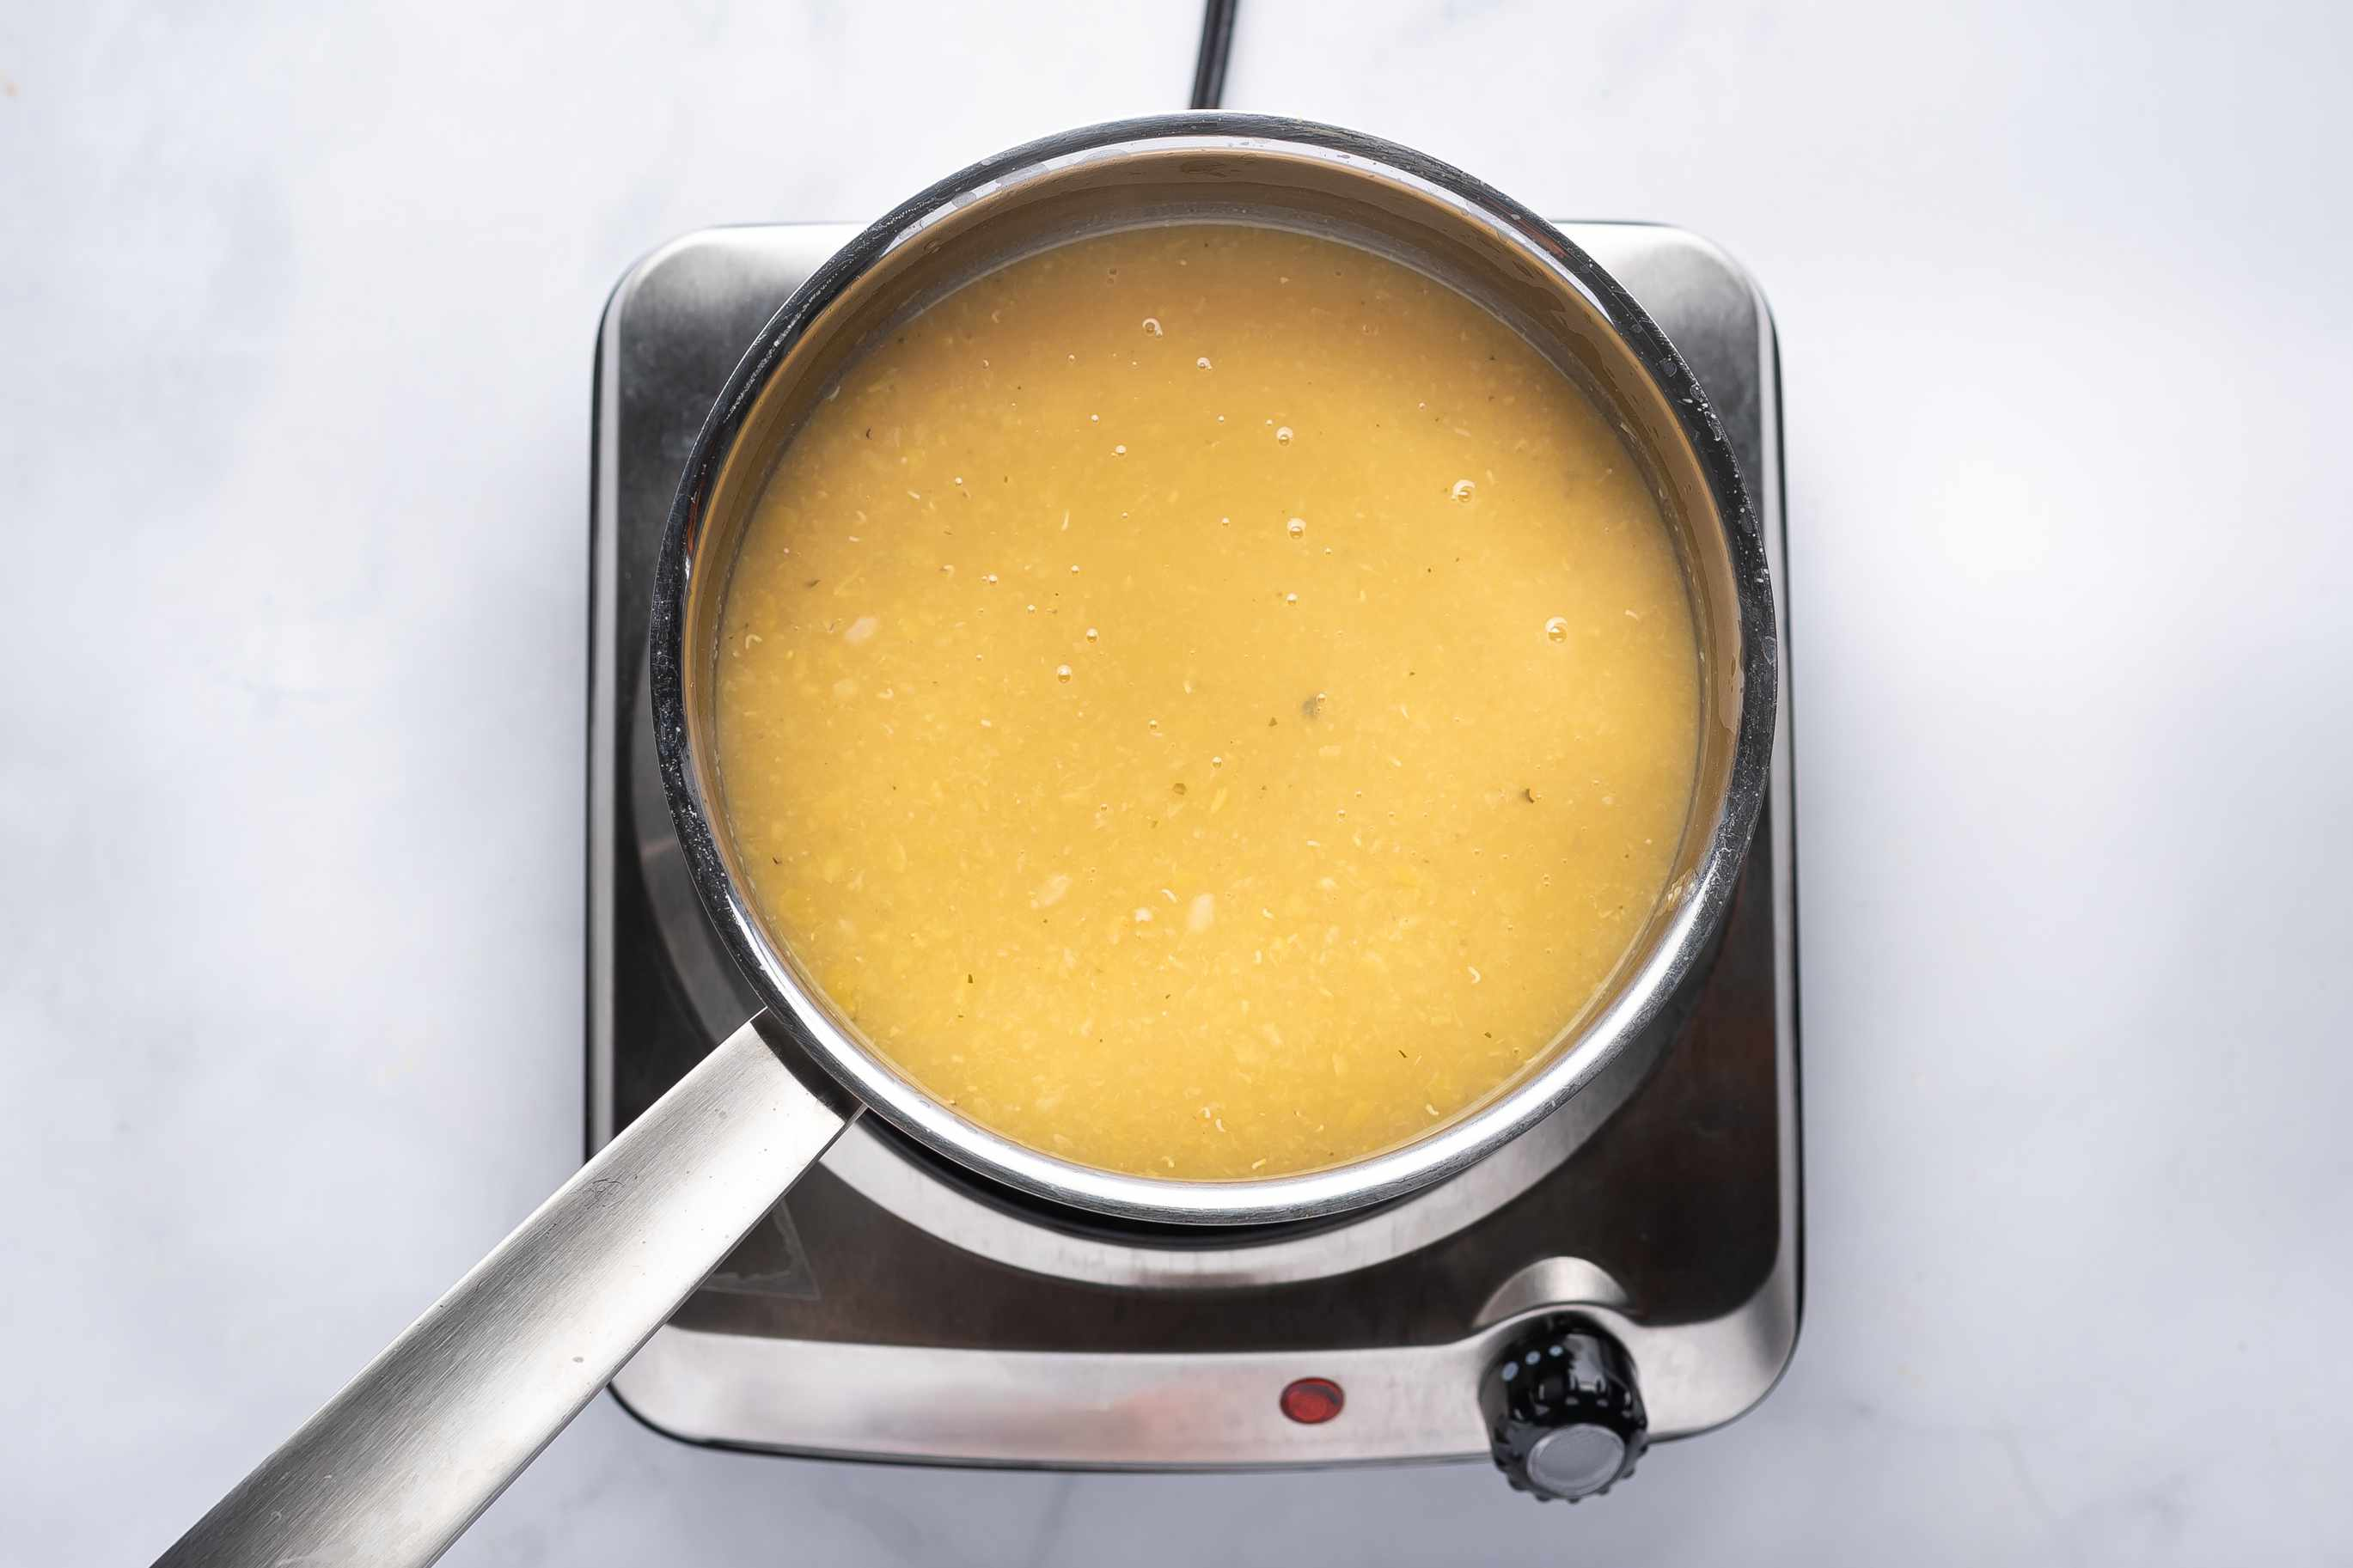 lentils cooking in a pot